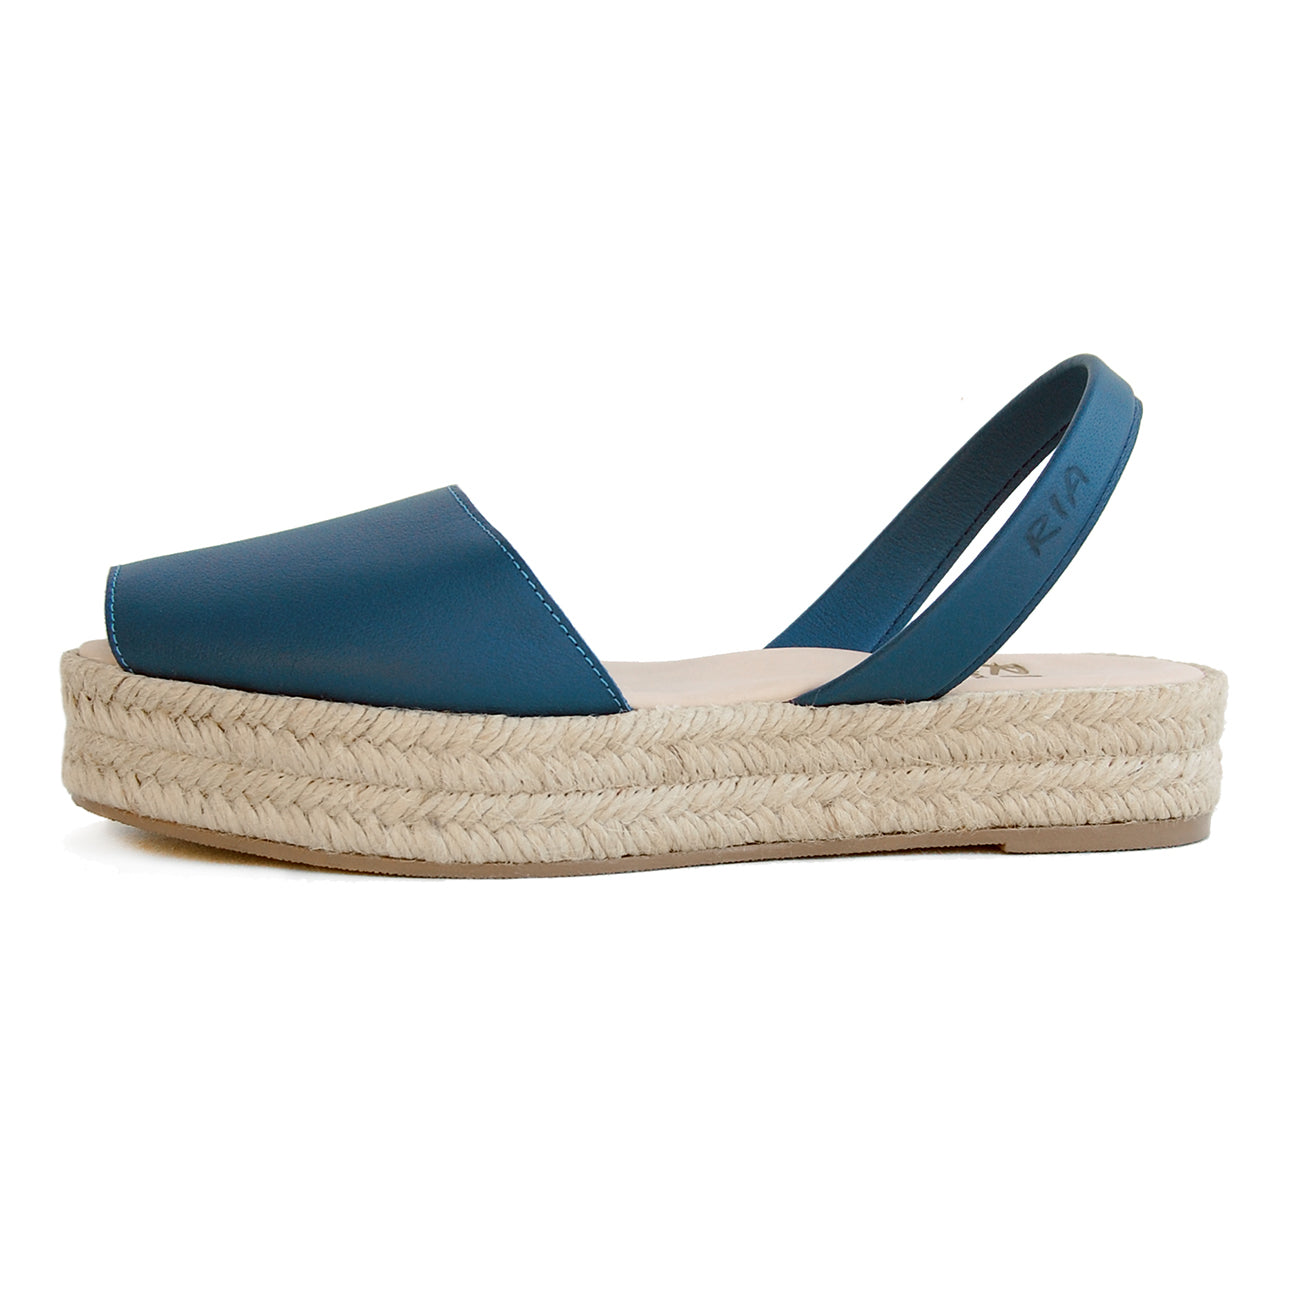 Avarcas Espadrilles Pablo in Denim